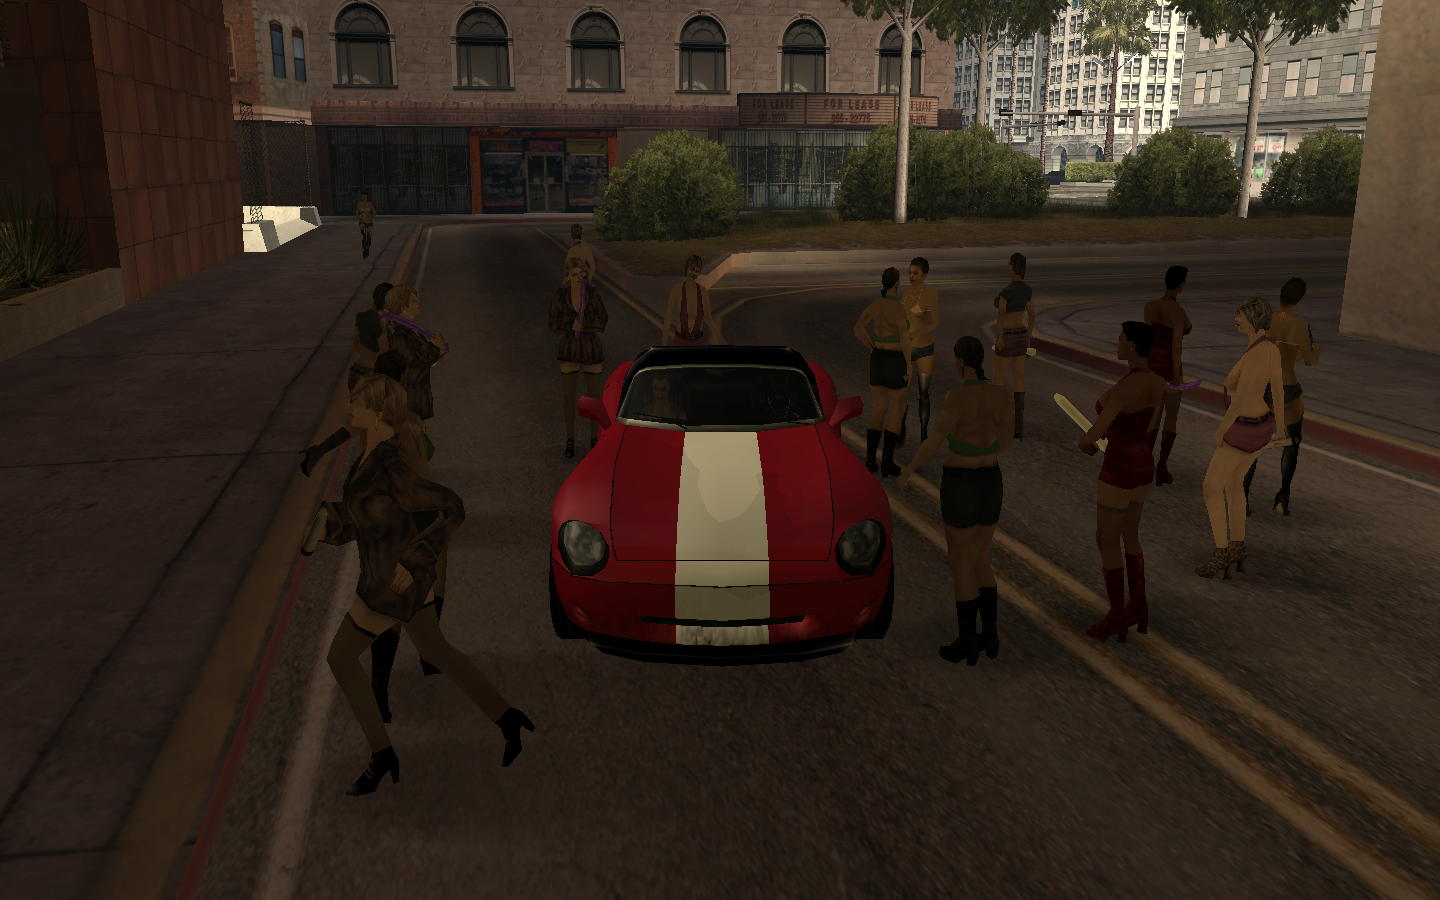 Image cj gtav transparent png gta wiki the grand theft auto wiki - Prostitutes Gtasa Png